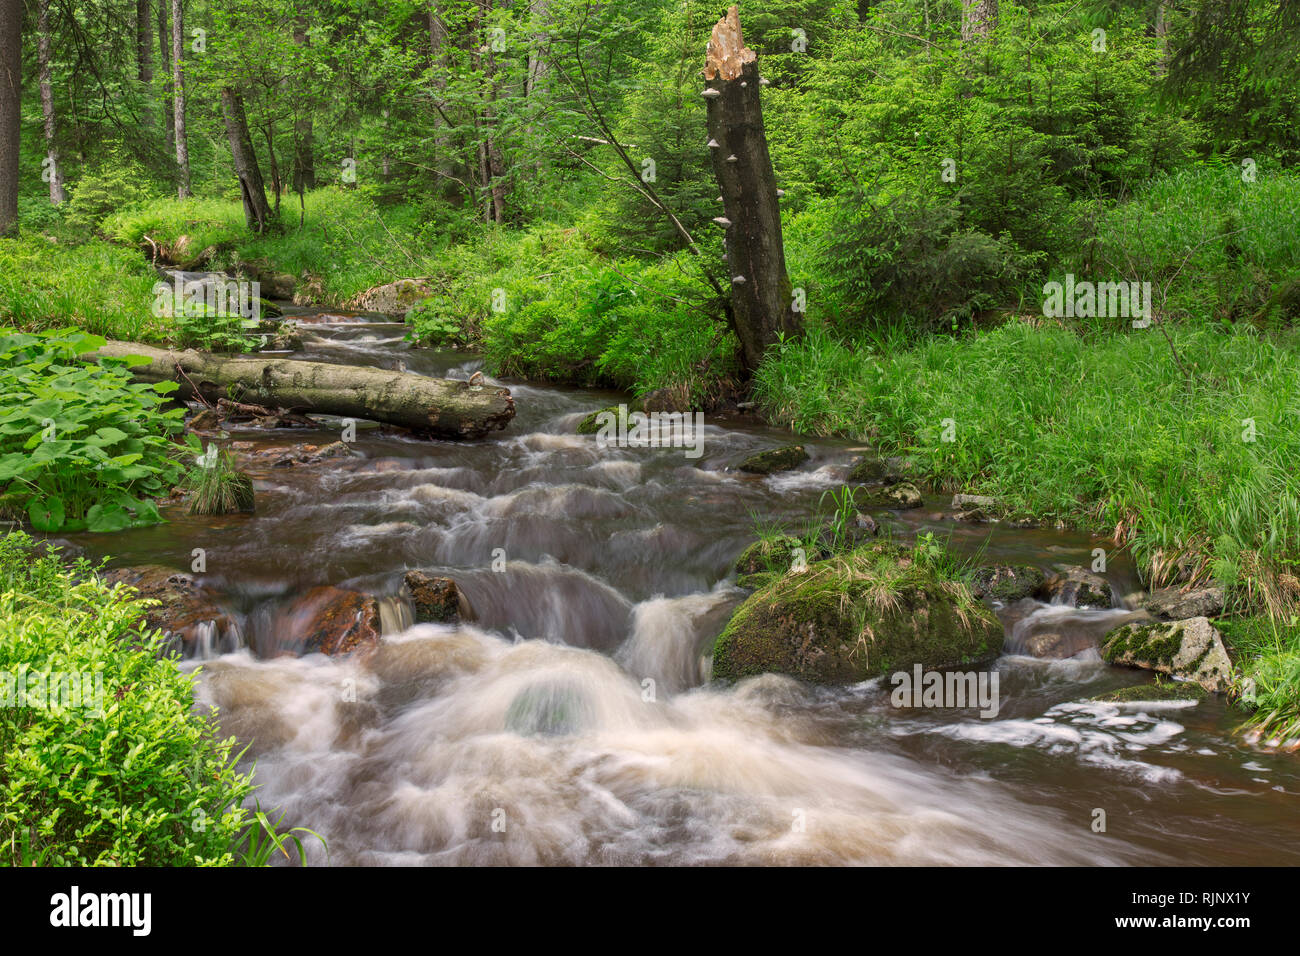 Warme Bode, right-hand headstream of the River Bode in the High Harz mountains, Lower Saxony / Niedersachsen, Germany - Stock Image